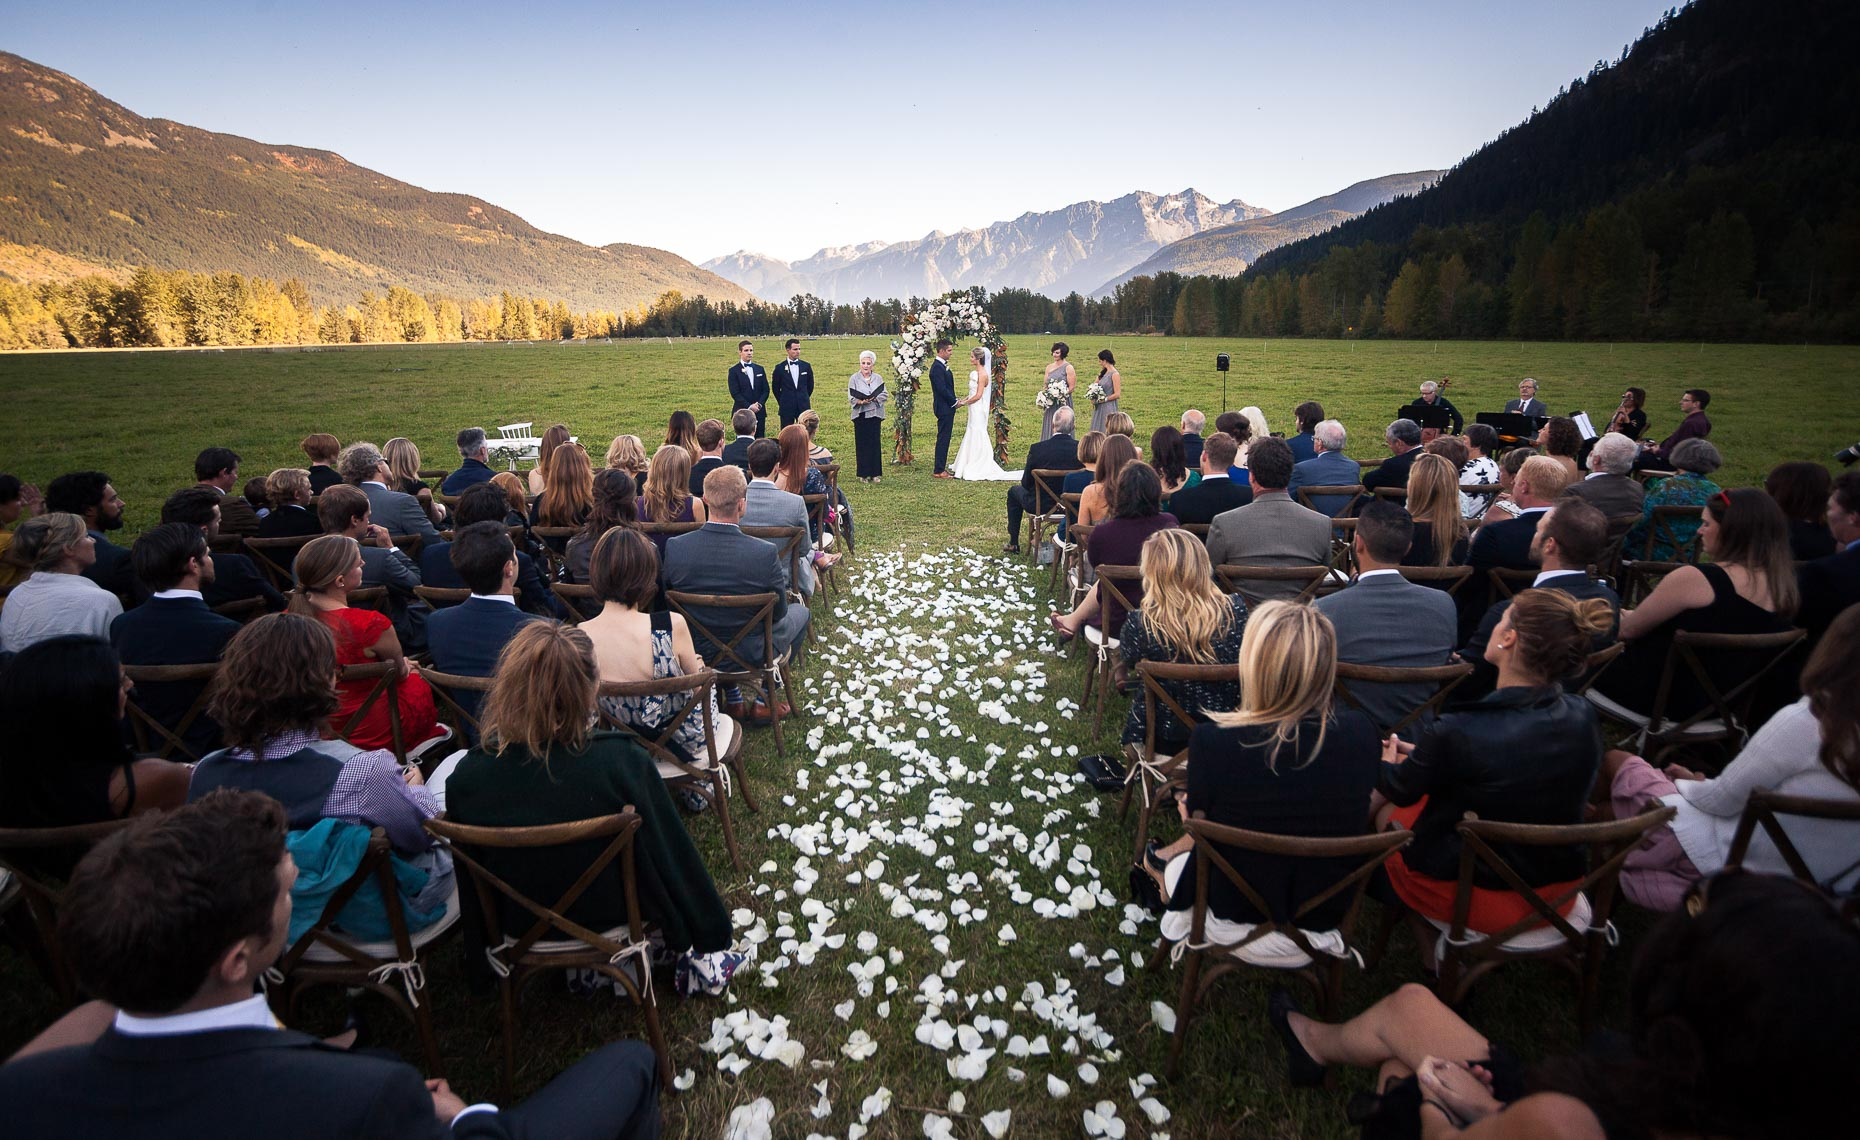 Wideangle wedding shot of farm wedding in Pemberton with mountains